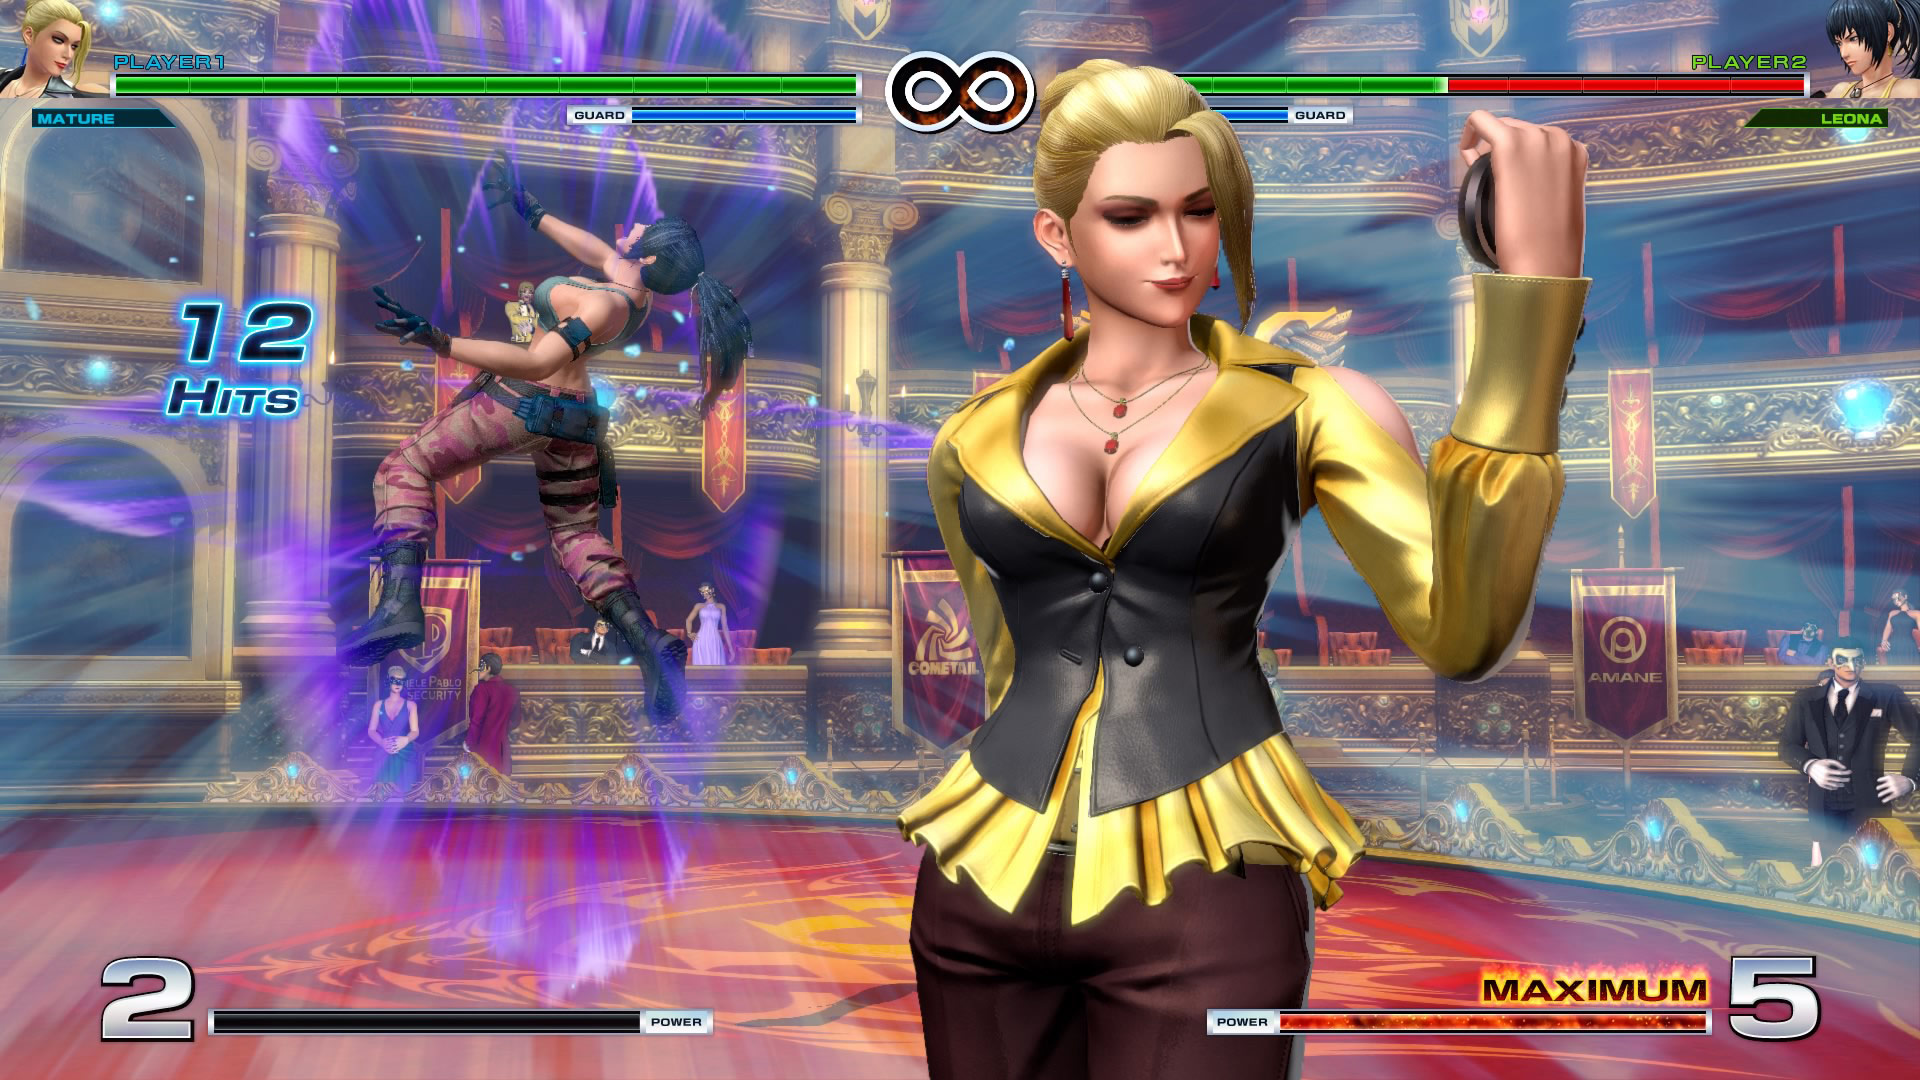 King of Fighters 14 1.10 graphics update 44 out of 60 image gallery